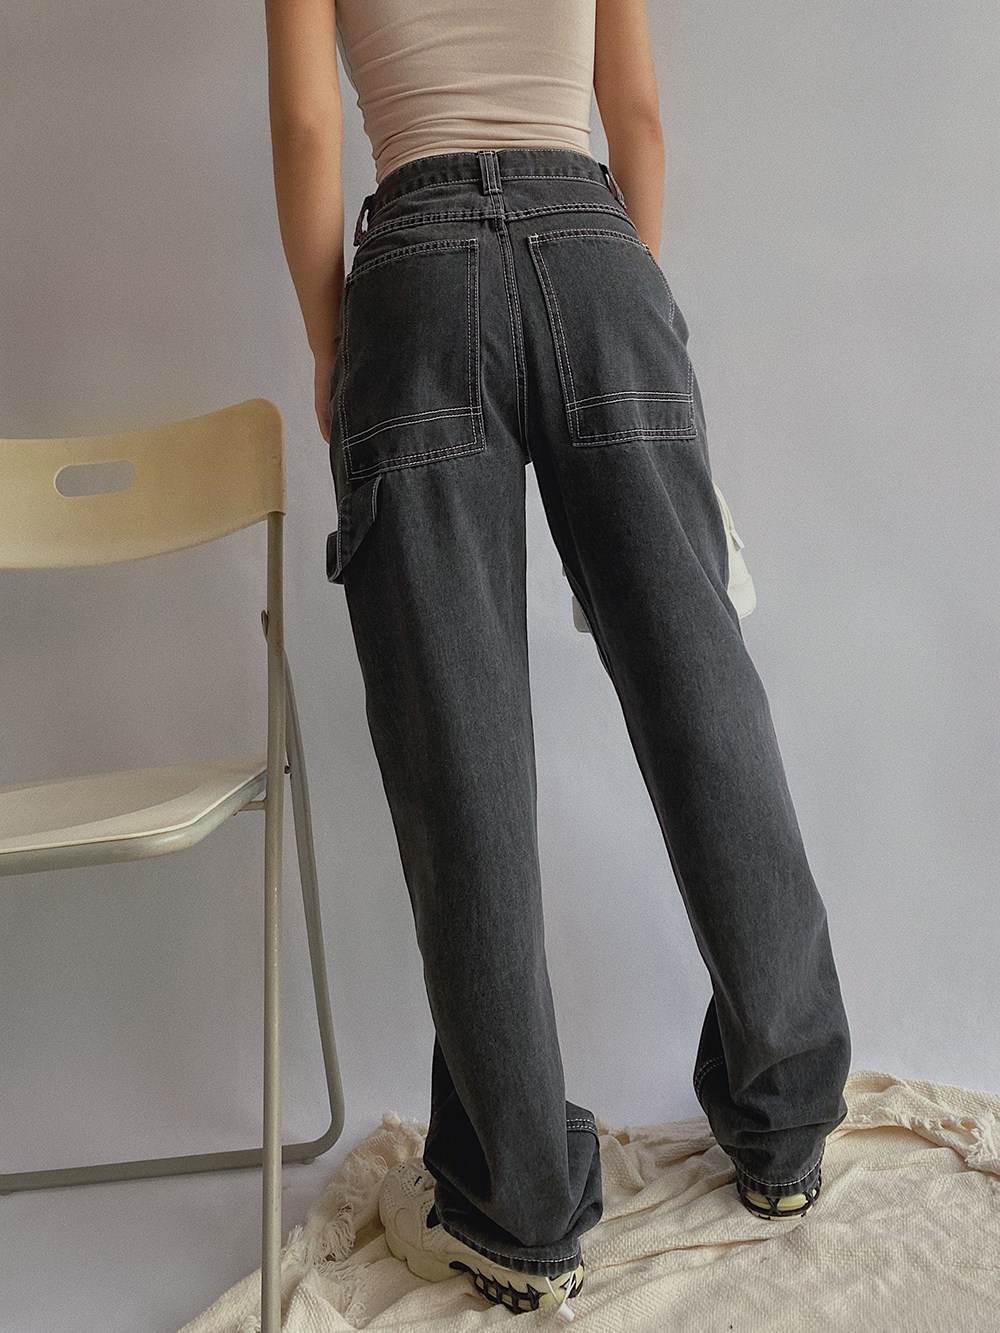 New autumn jeans womens loose boy friends work clothes with wide legs and elegant sagging, high waist showing thin and straight tube mopping on the floor